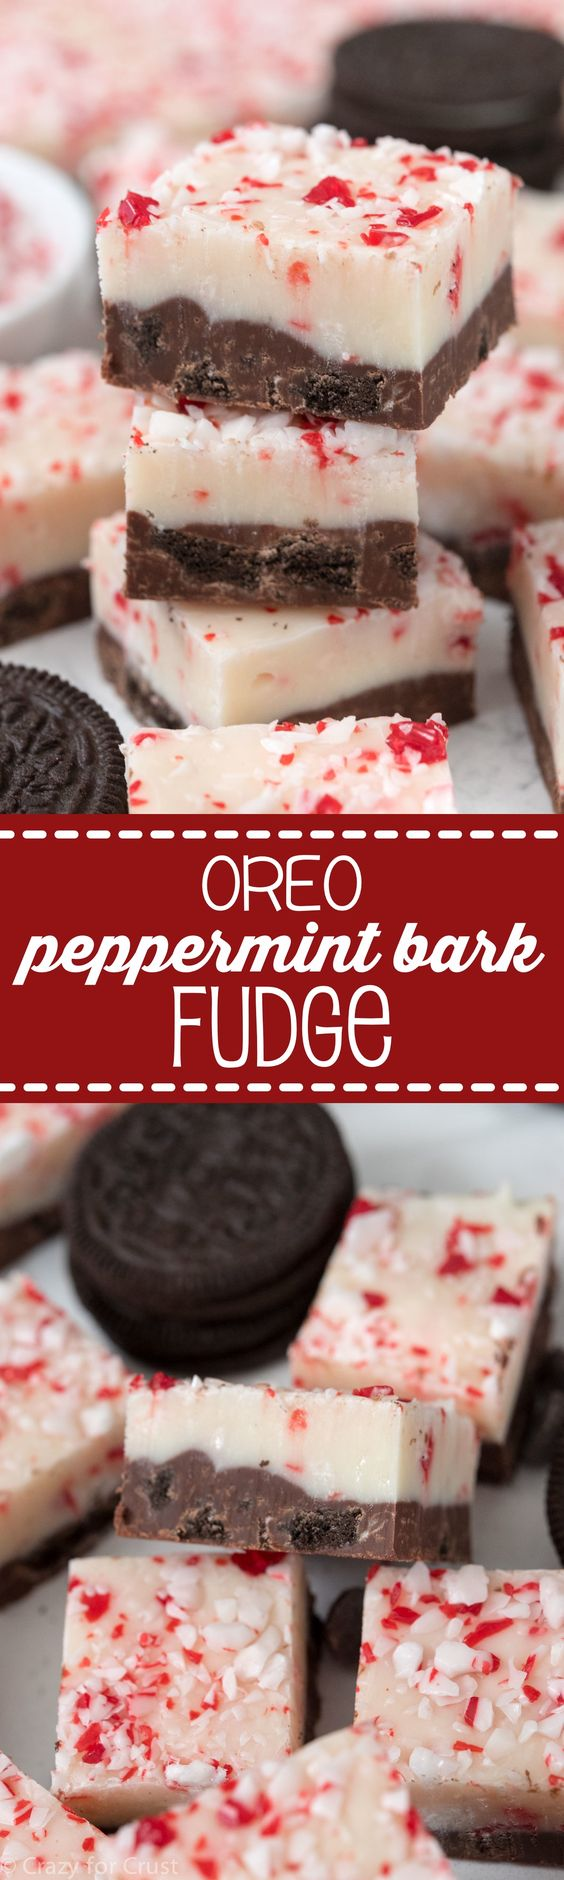 Oreo Peppermint Bark Fudge Recipe via Crazy for Crust - The BEST Christmas Cookies, Fudge, Candy, Barks and Brittles Recipes - Favorites for Holiday Treats Gift Plates and Goodies Bags! #chrstmascookies #christmascandy #christmastreats #holidaydesserts #holidayrecipes #christmascandies #holidaygiftplates